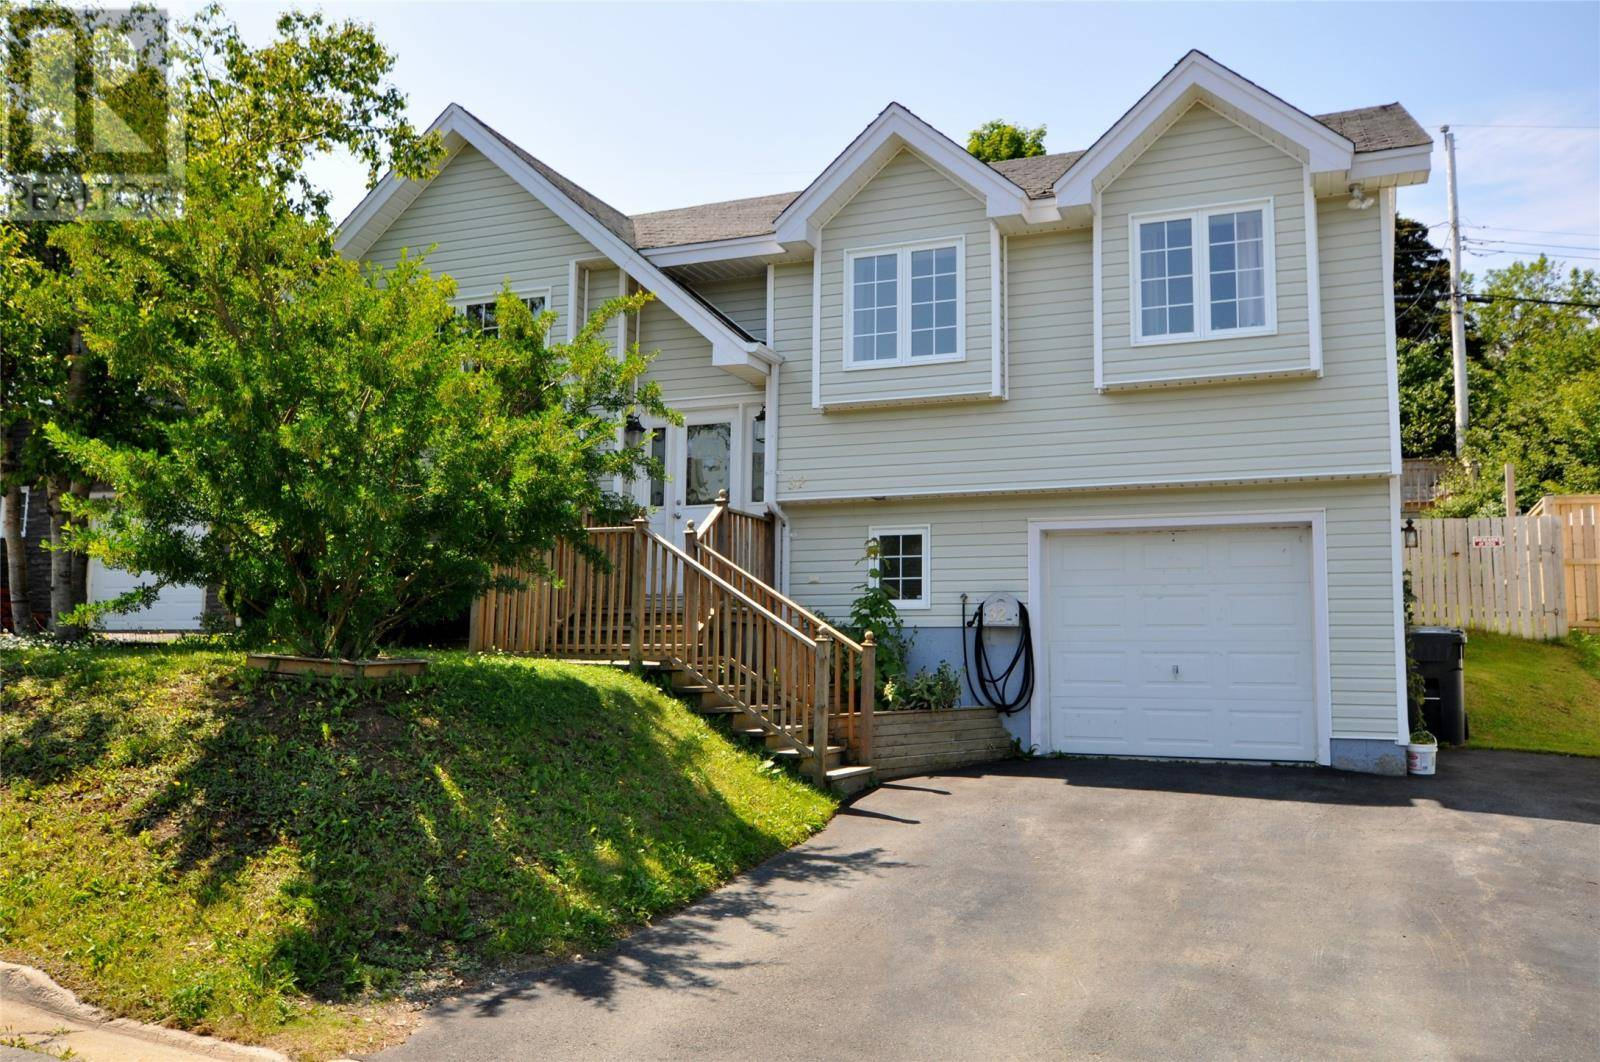 House for sale at 32 Mainsail Dr Conception Bay South Newfoundland - MLS: 1200236